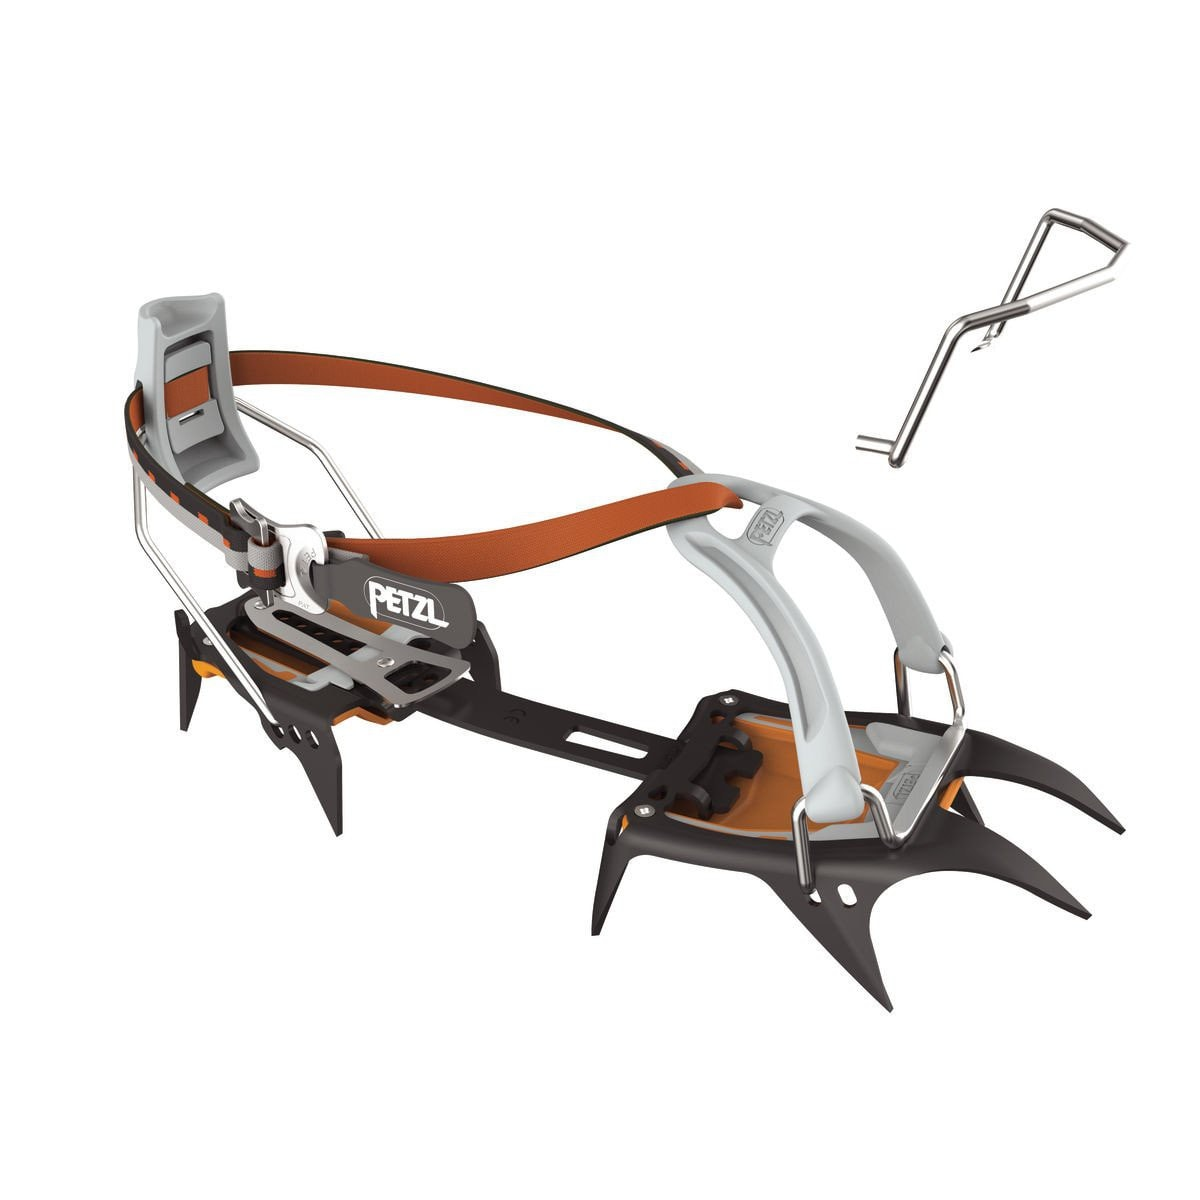 Petzl Irvis LeverLock Universal Crampon, in black, orange and silver colours